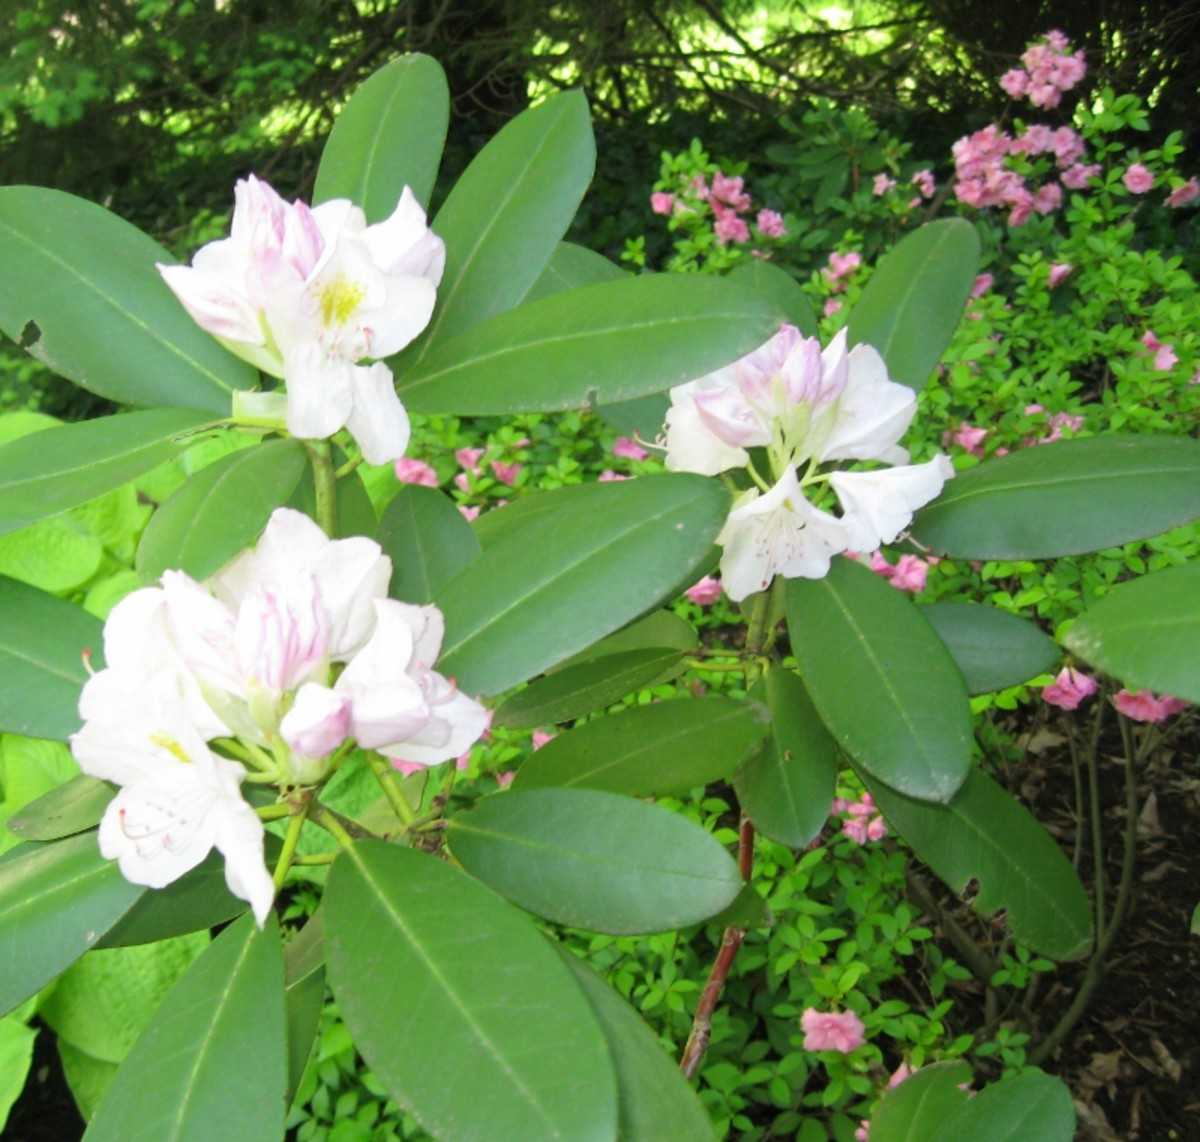 Rhododendrons and azaleas from my yard, both perennials. Azaleas are deciduous (pink flowers on right), rhododendrons have beautiful flowers in spring, and stay green all year long, providing great texture and color also in the coldest winter months.